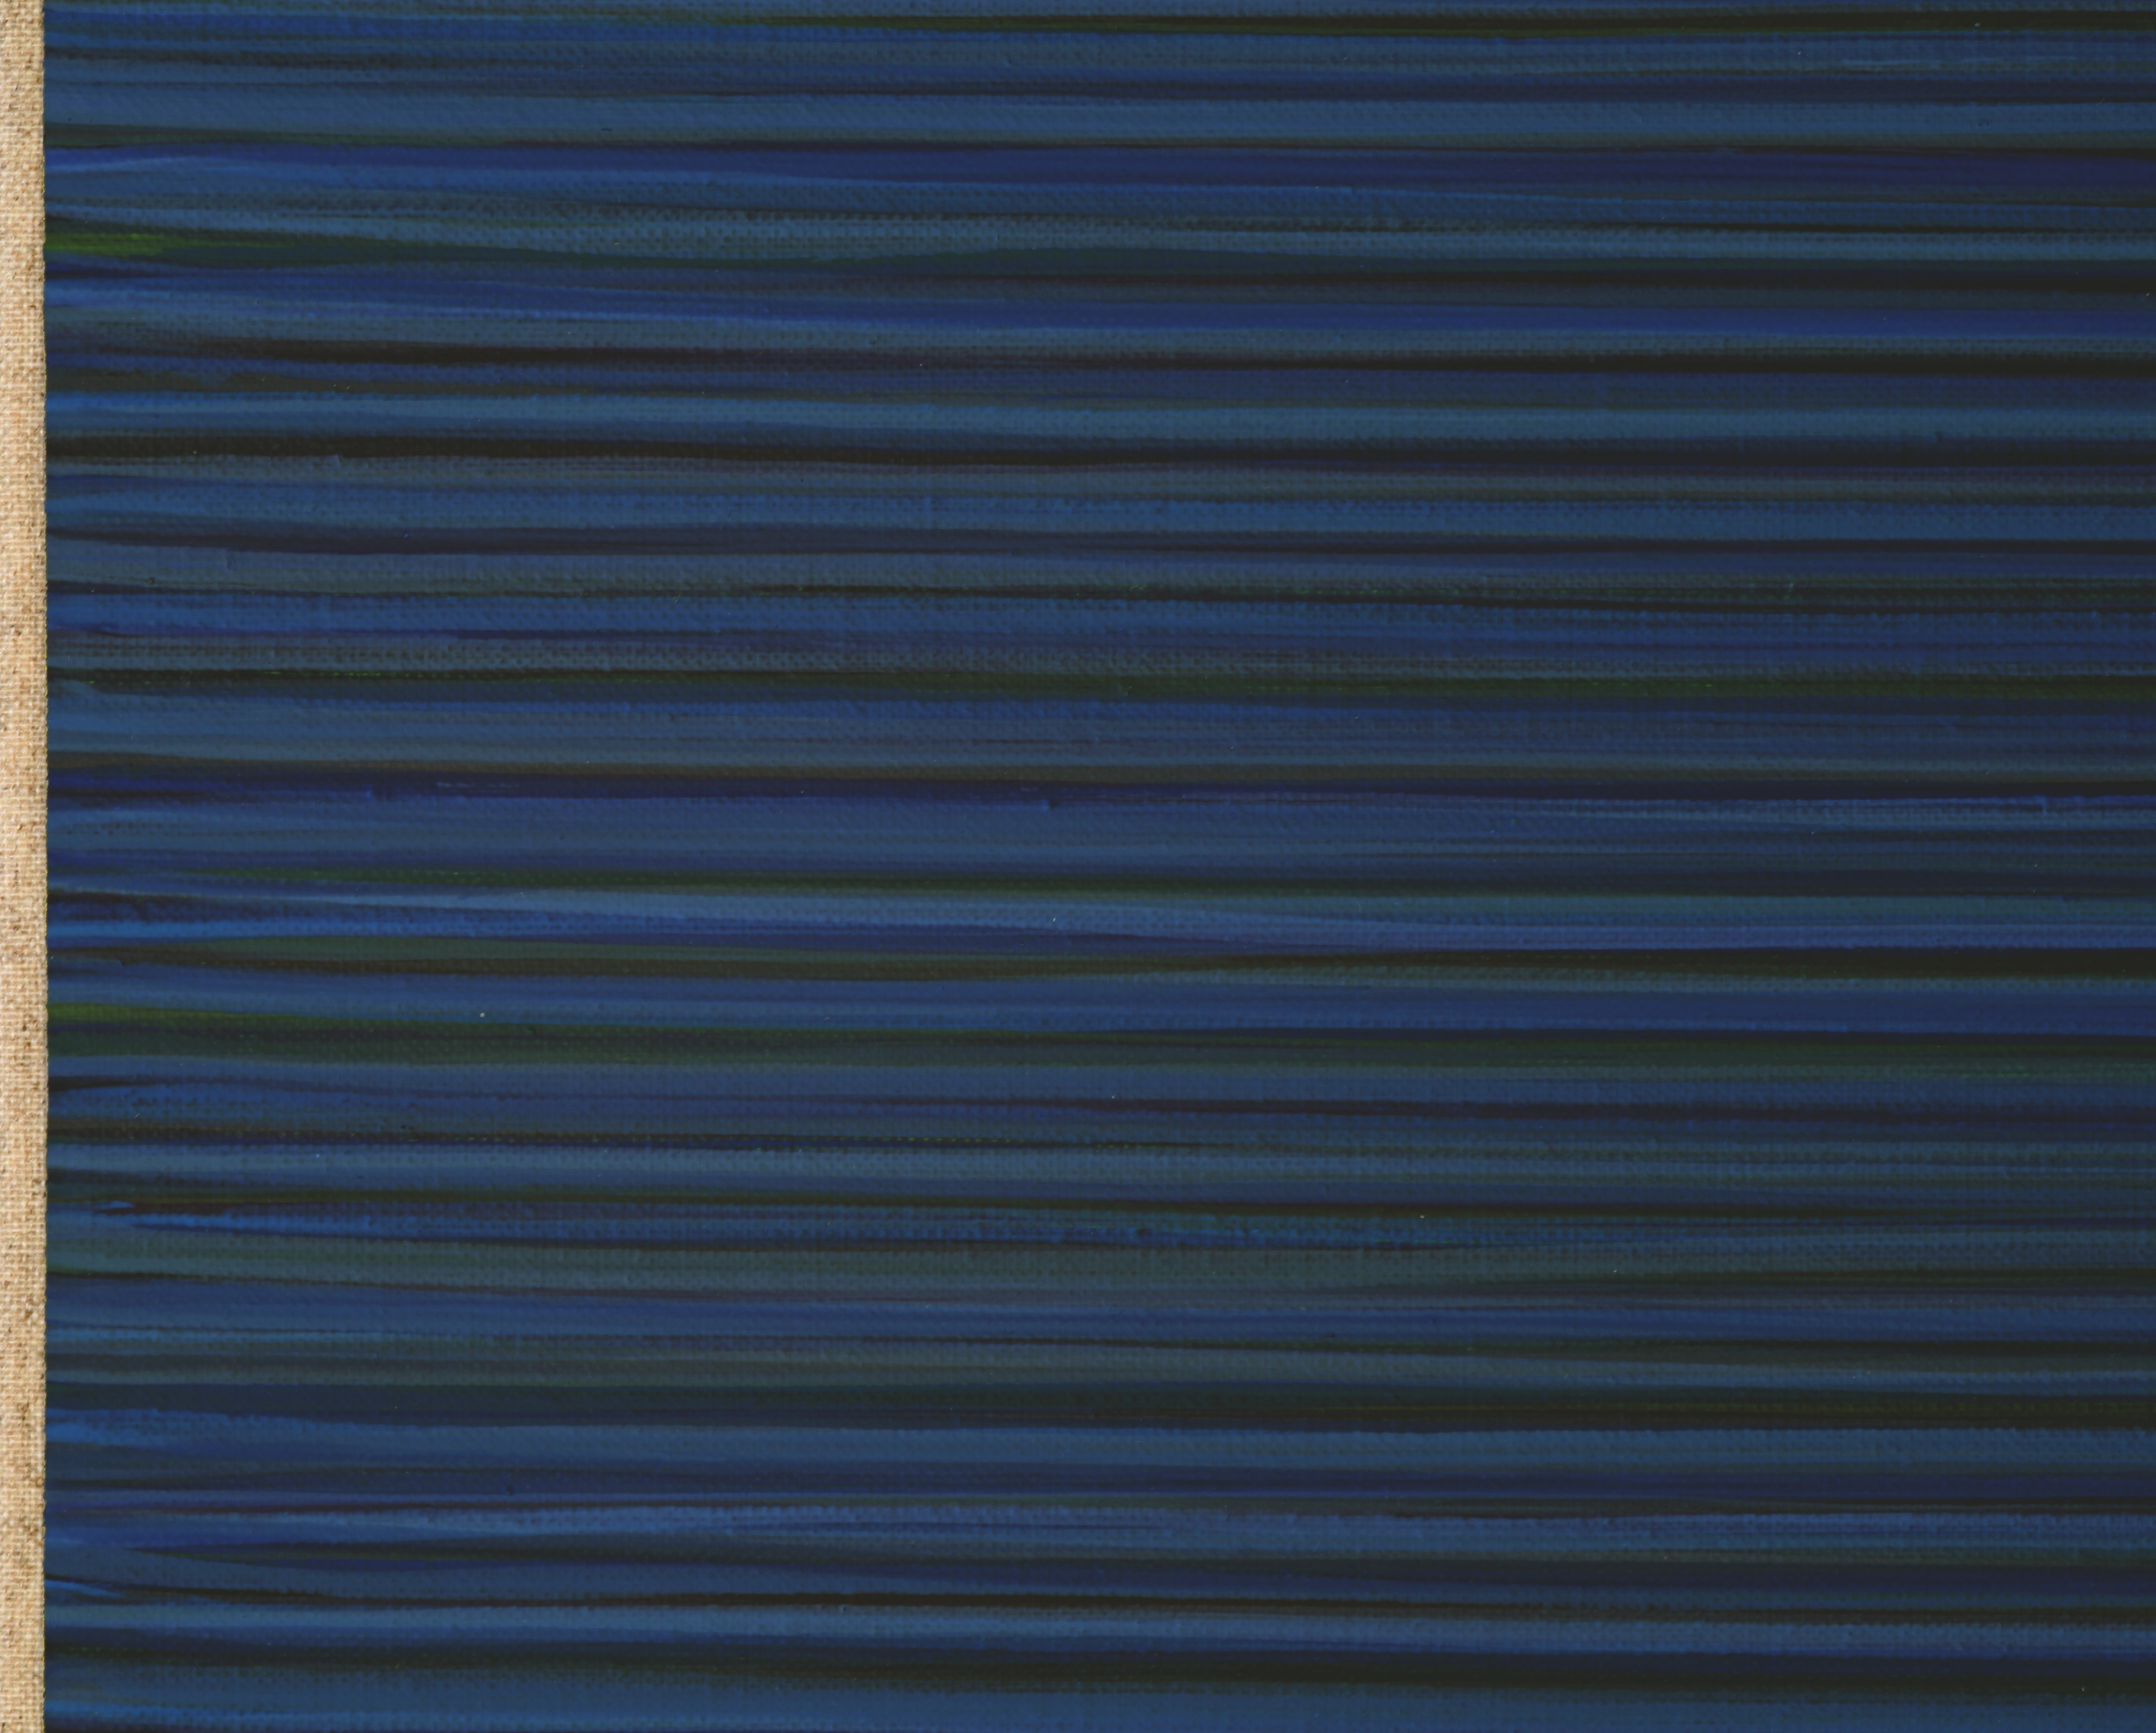 Untilted (Detail), 2014, 70x70 cm, 27.55x27.55 in